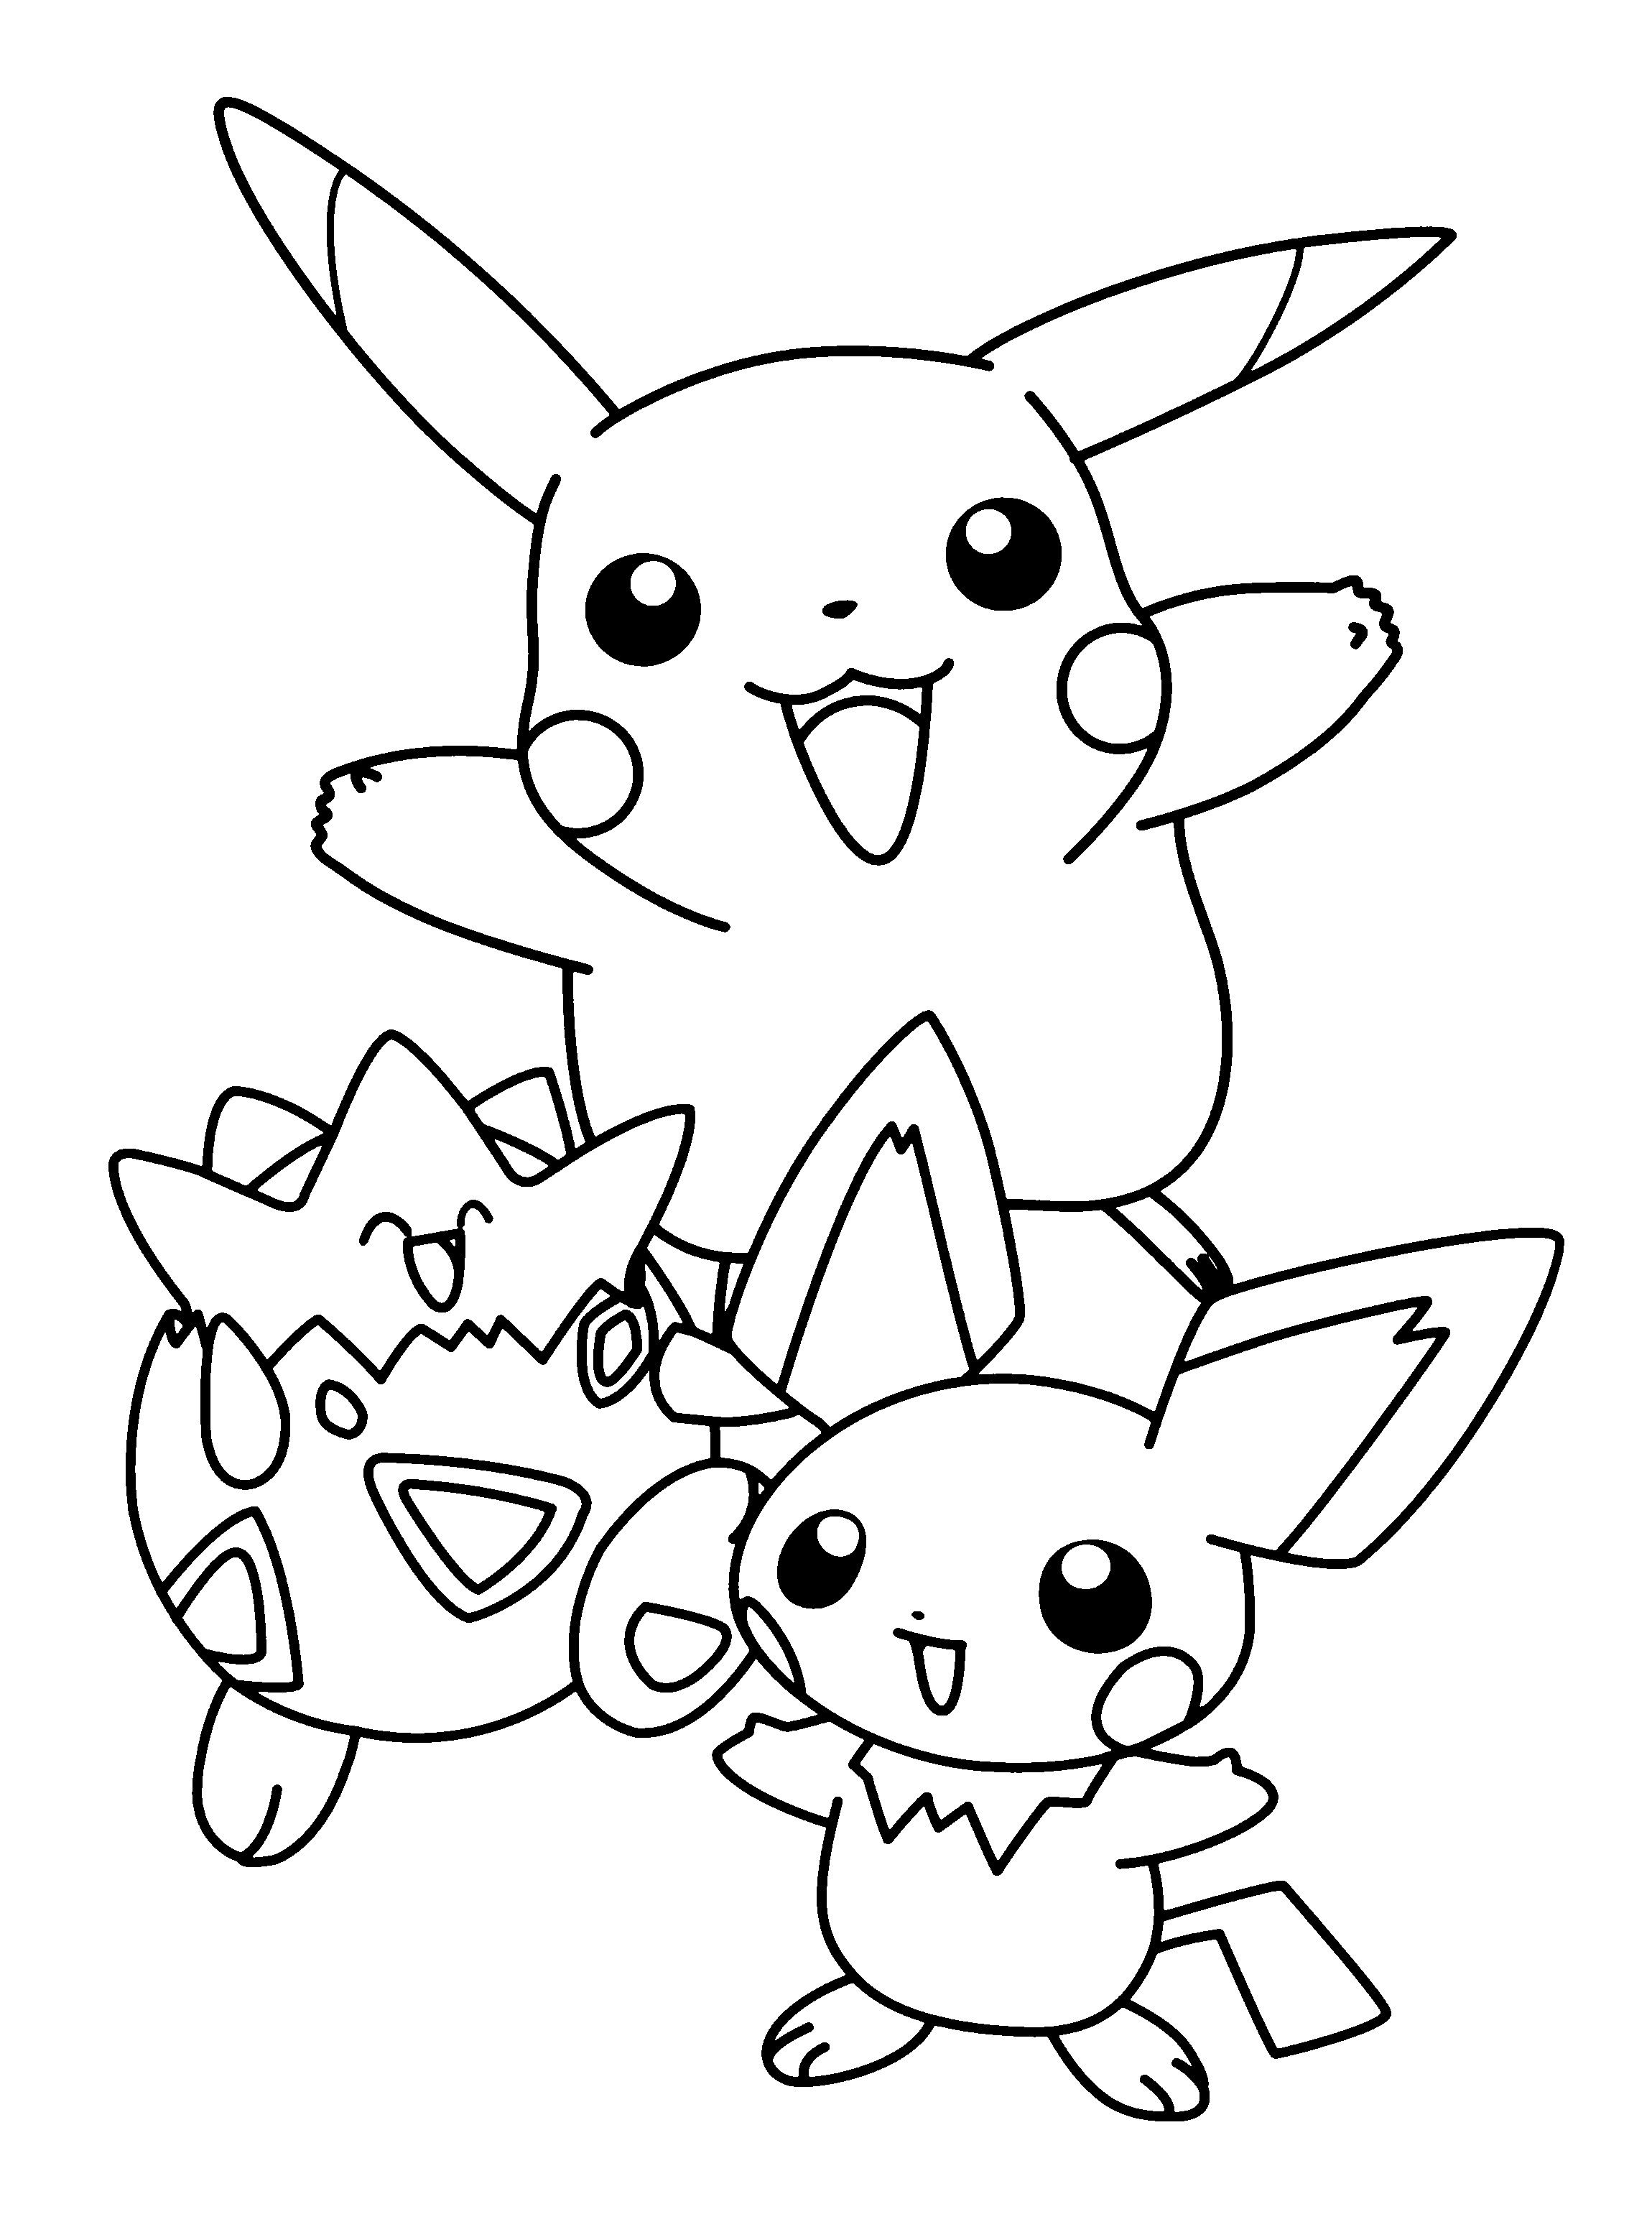 Pikachu And Charizard Coloring Pages From The Thousands Of Photos On The Net About Pikac Pikachu Coloring Page Cartoon Coloring Pages Pokemon Coloring Sheets